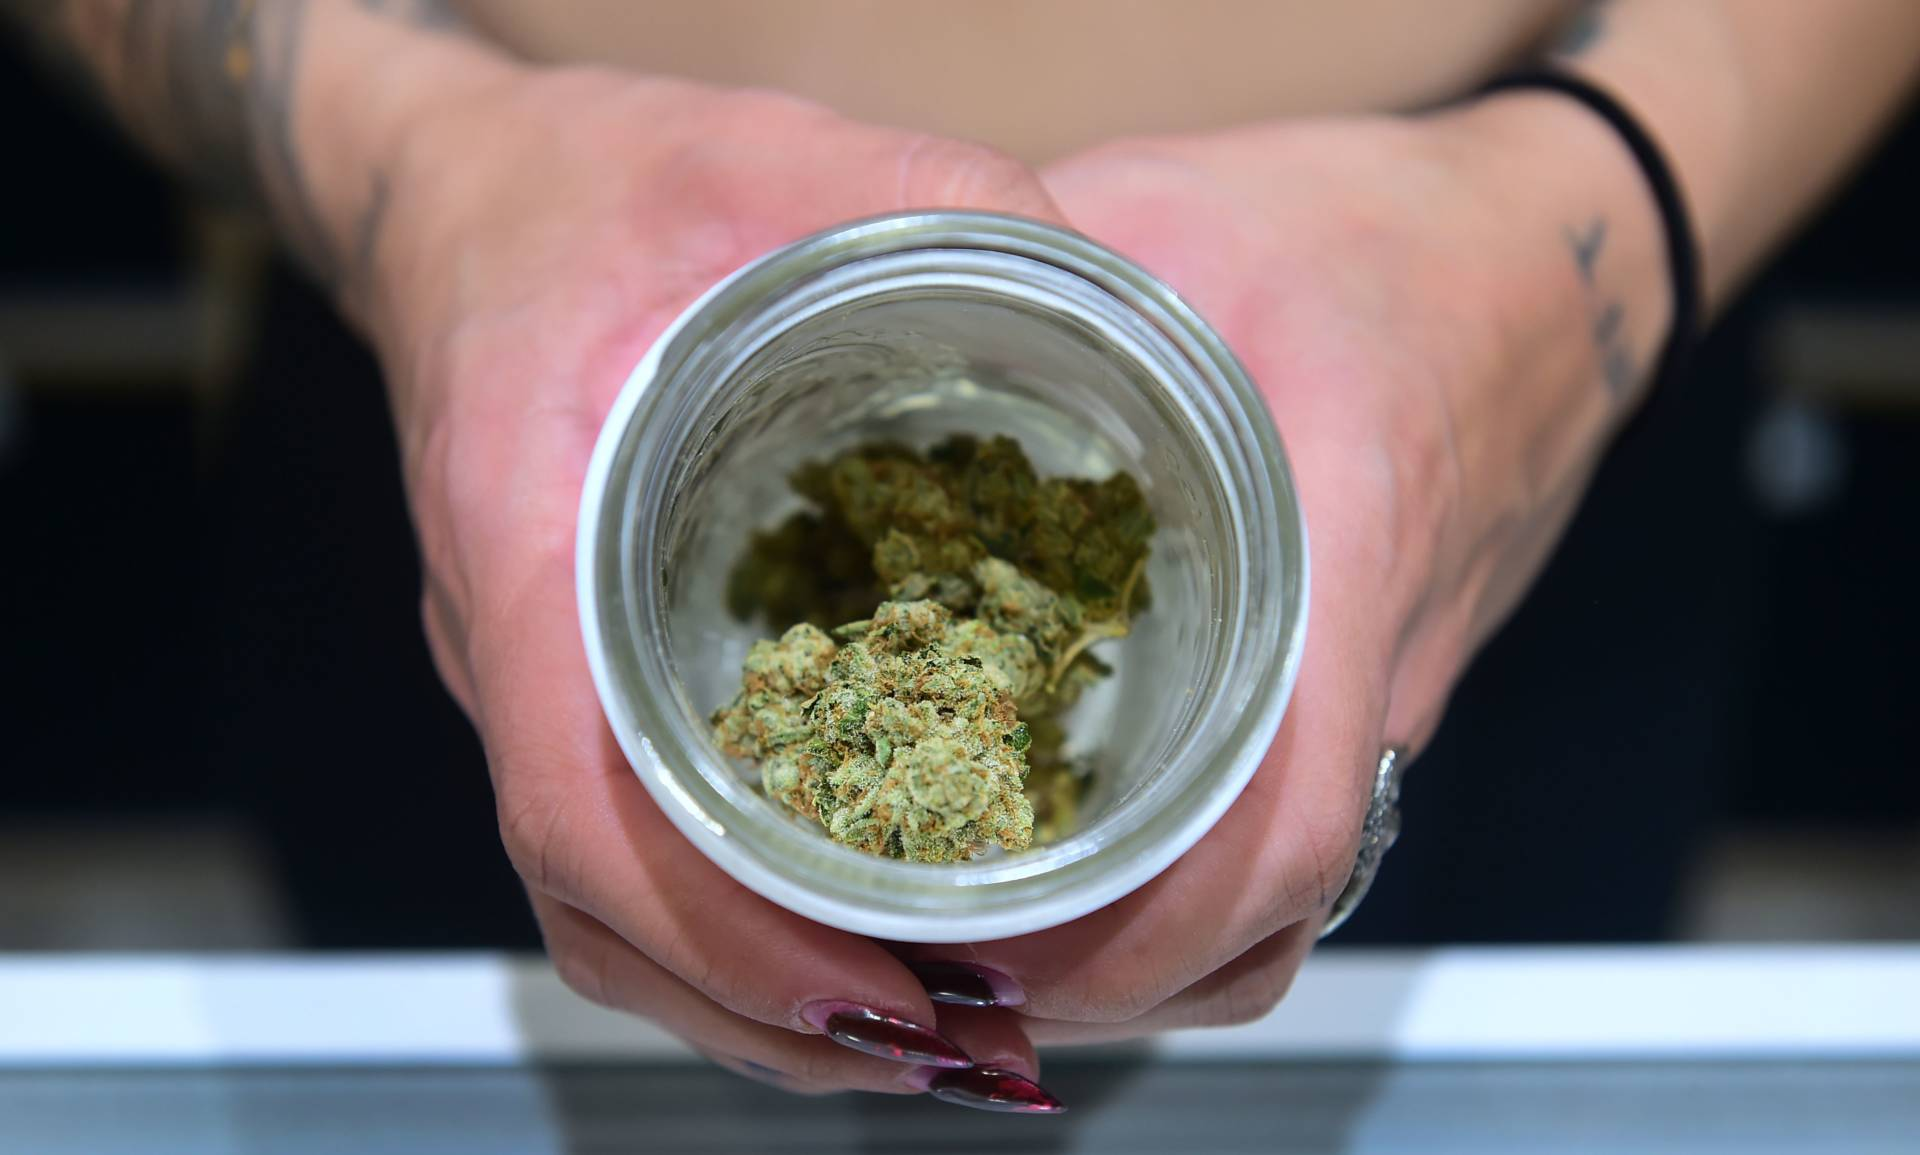 A jar of Insane OG, a strain of marijuana, is displayed at the opening of 'Dr. Greenthumb', the flagship medical and recreational marijuana dispensary opened today by B Real of Cypress Hill fame in Sylmar, California on August 15, 2018. FREDERIC J. BROWN/AFP/Getty Images